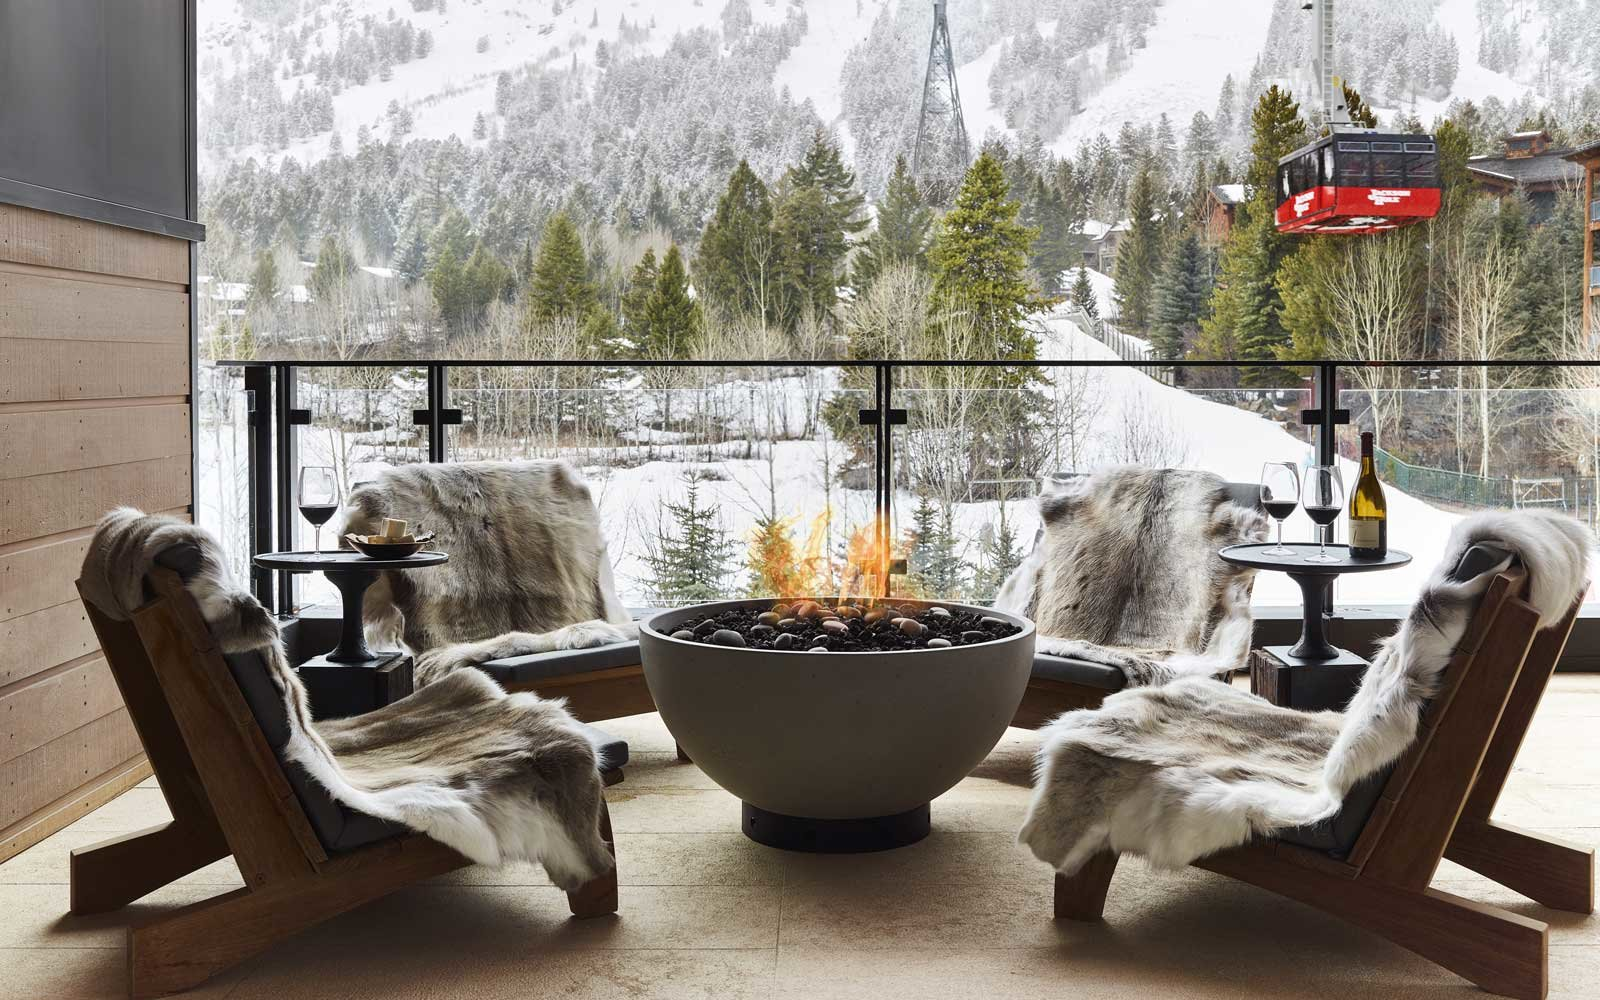 Fire pit at the Caldera House hotel in Jackson Hole, Wyoming